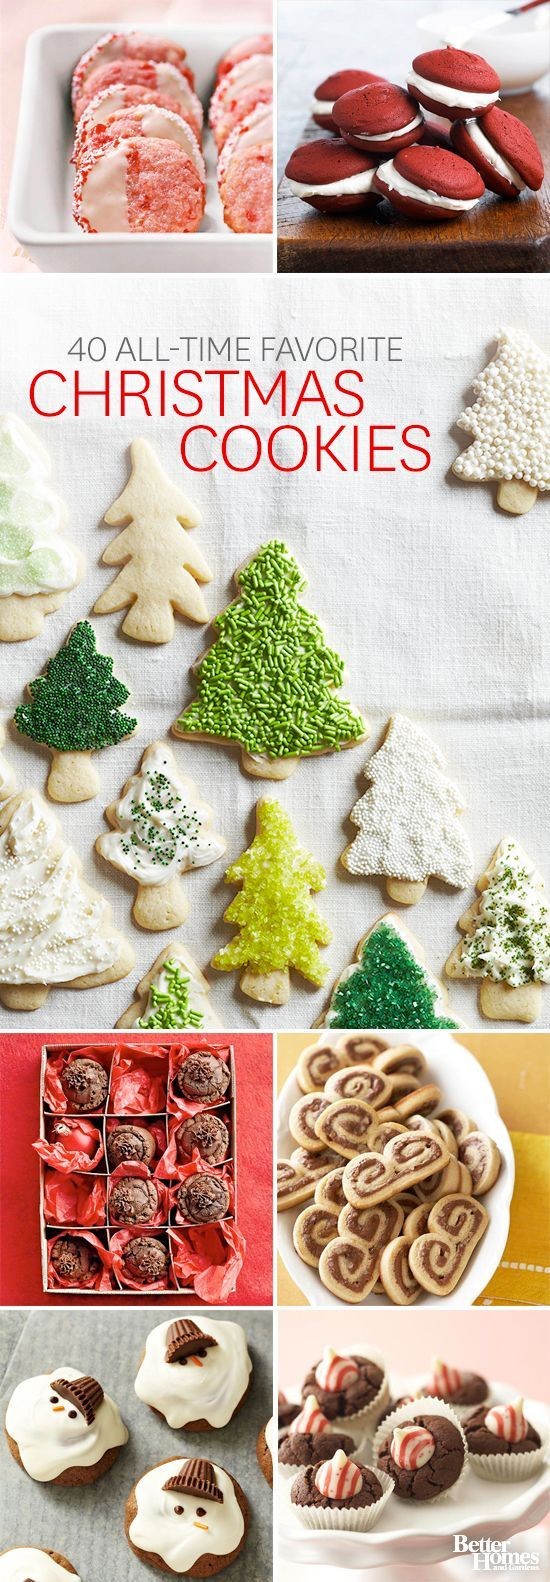 You'll love our favorite Christmas cookie recipes! ...♥♥... Add a new family favorite to your line-up this season: http://www.bhg.com/christmas/cookies/irresistible-and-easy-christmas-cookies/?socsrc=bhgpin111514christmascookies